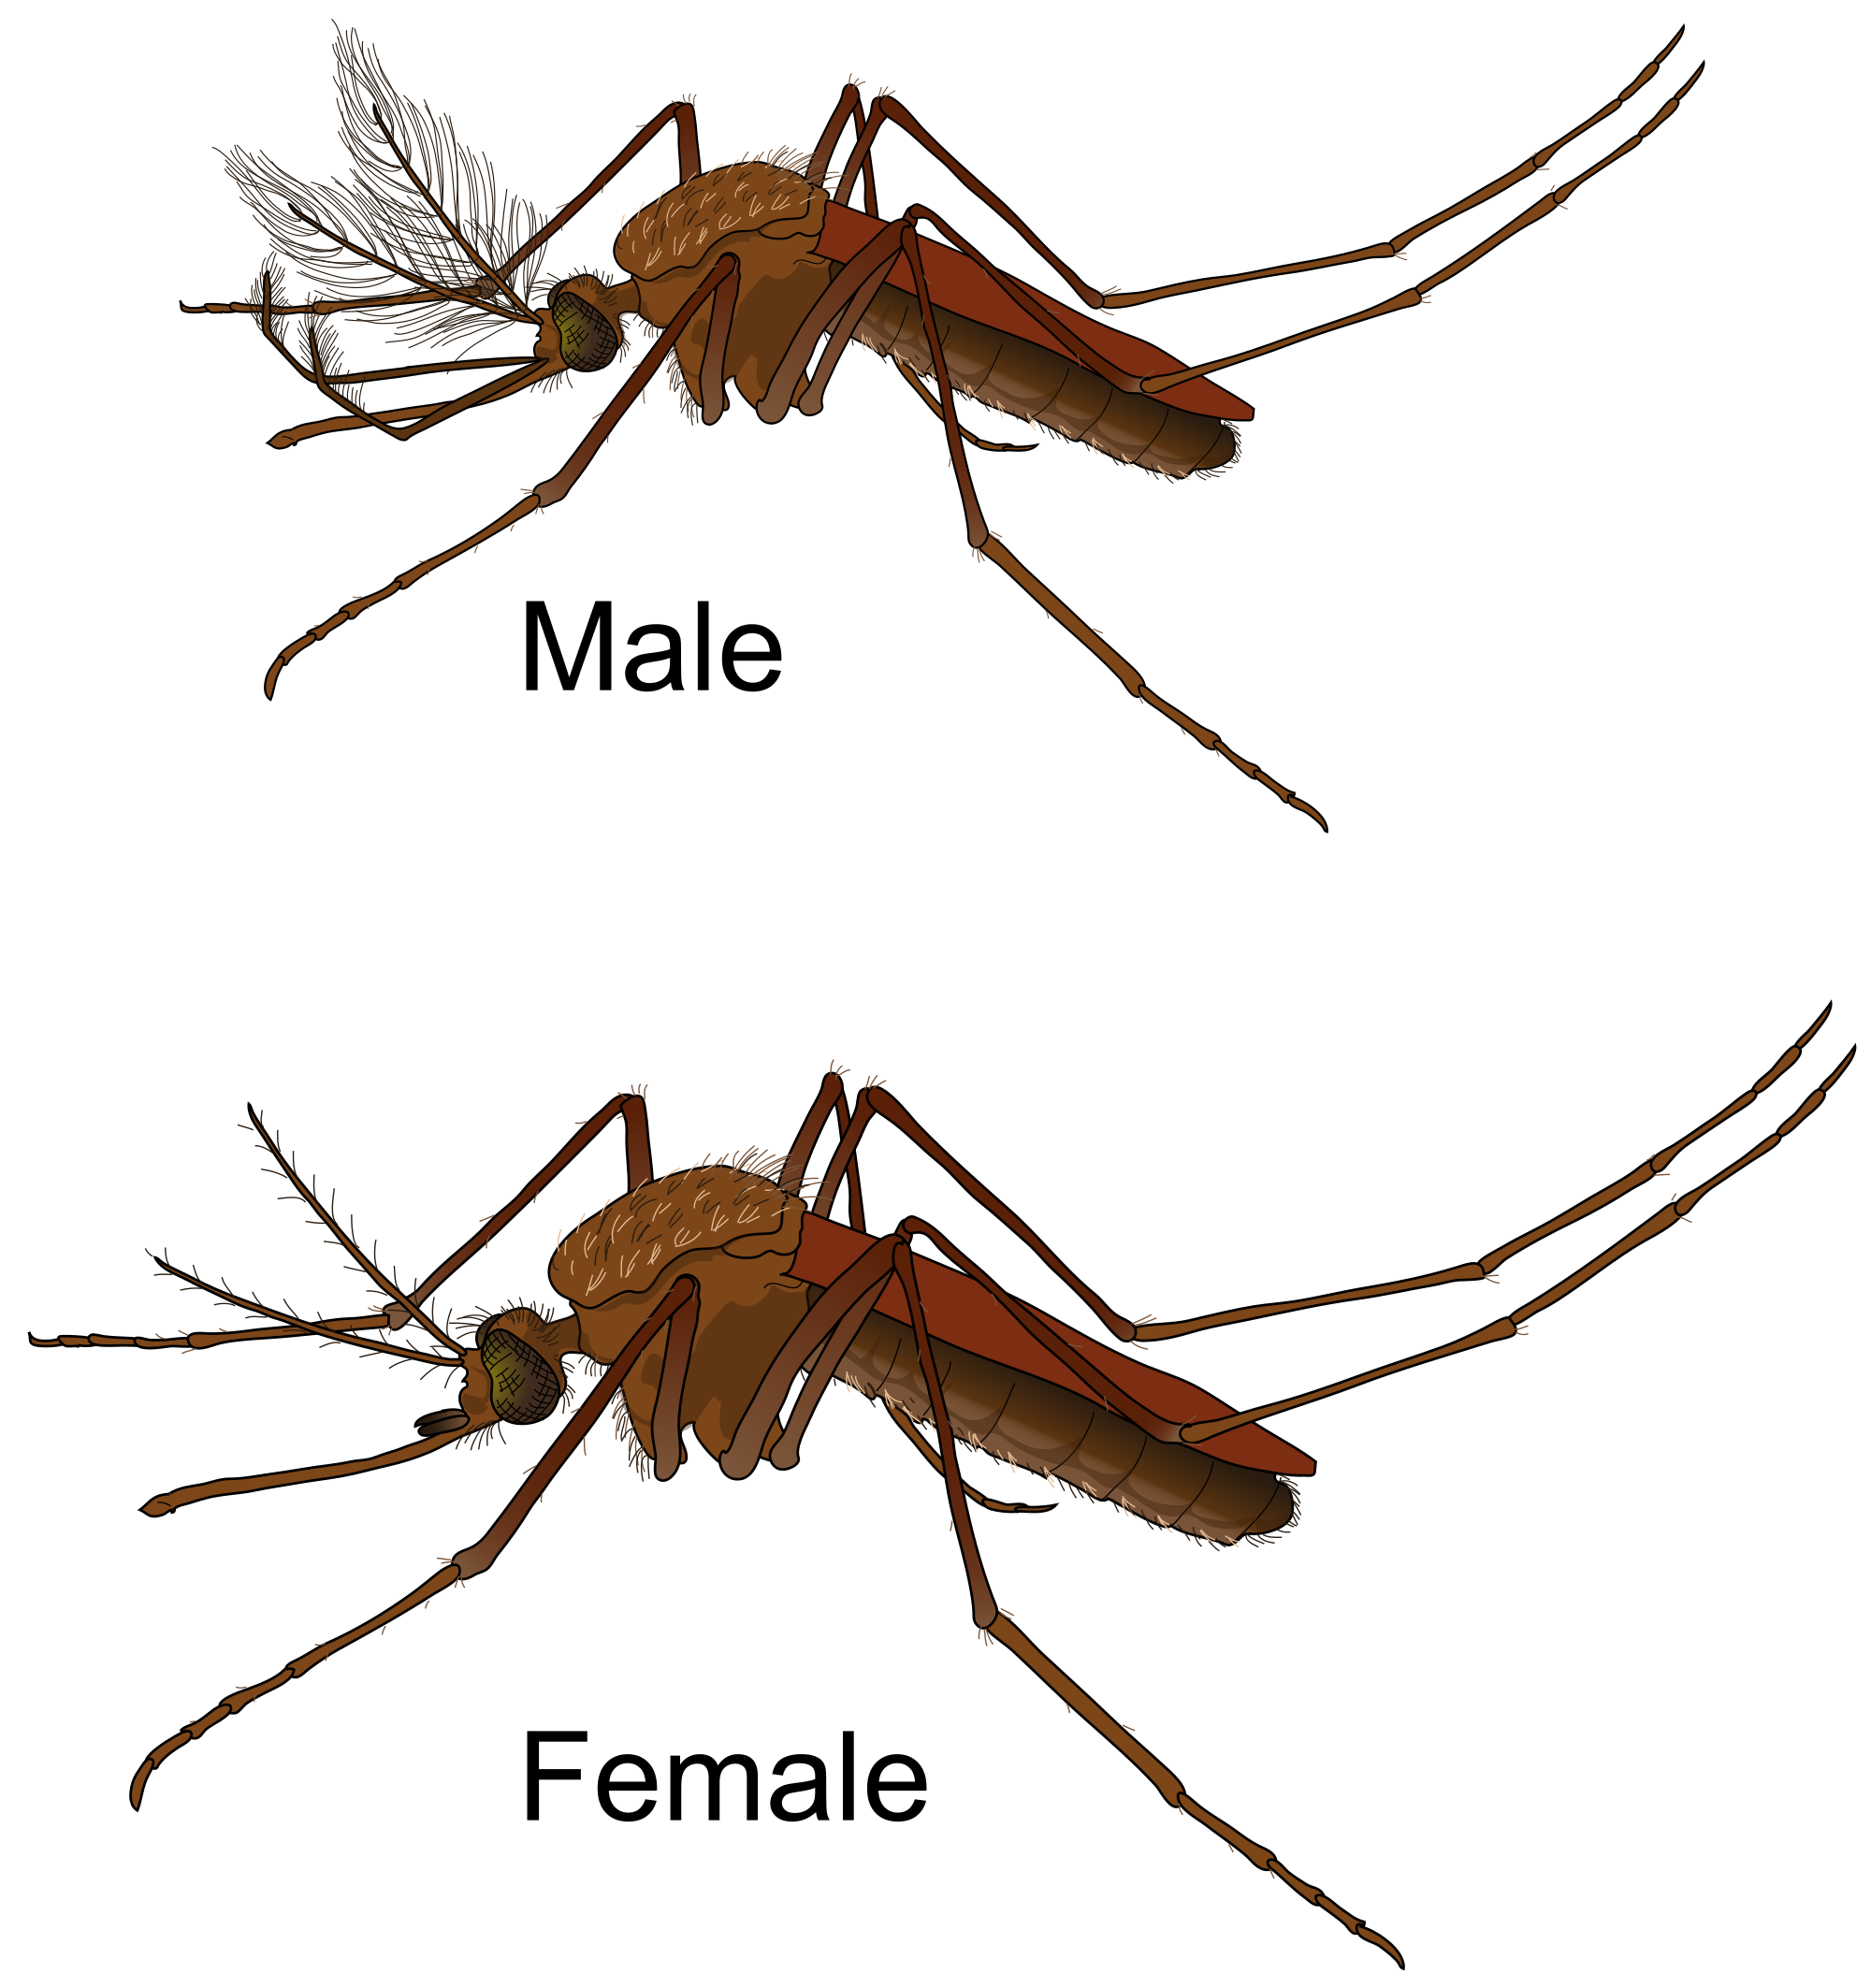 Mosquito svg #12, Download drawings